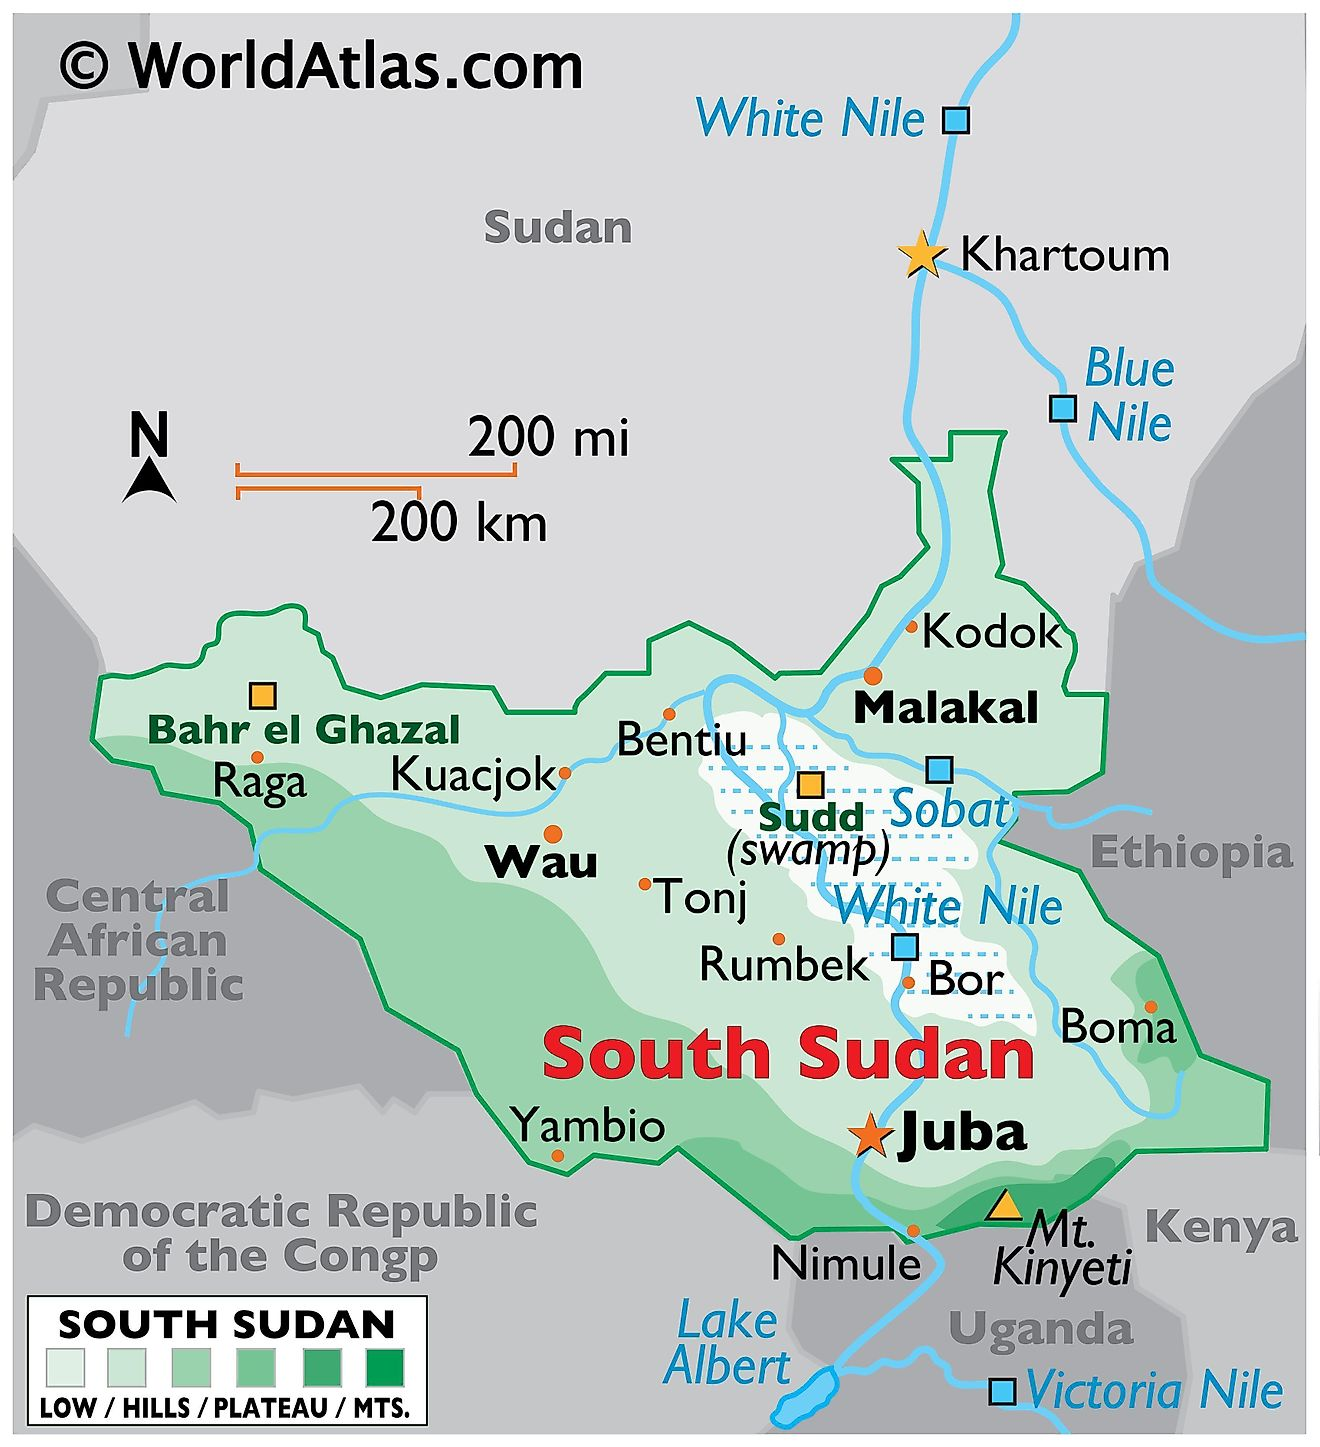 Physical Map of South Sudan with state boundaries. It exhibits South Sudan's major physical features like terrain, mountains, rivers, major and cities.